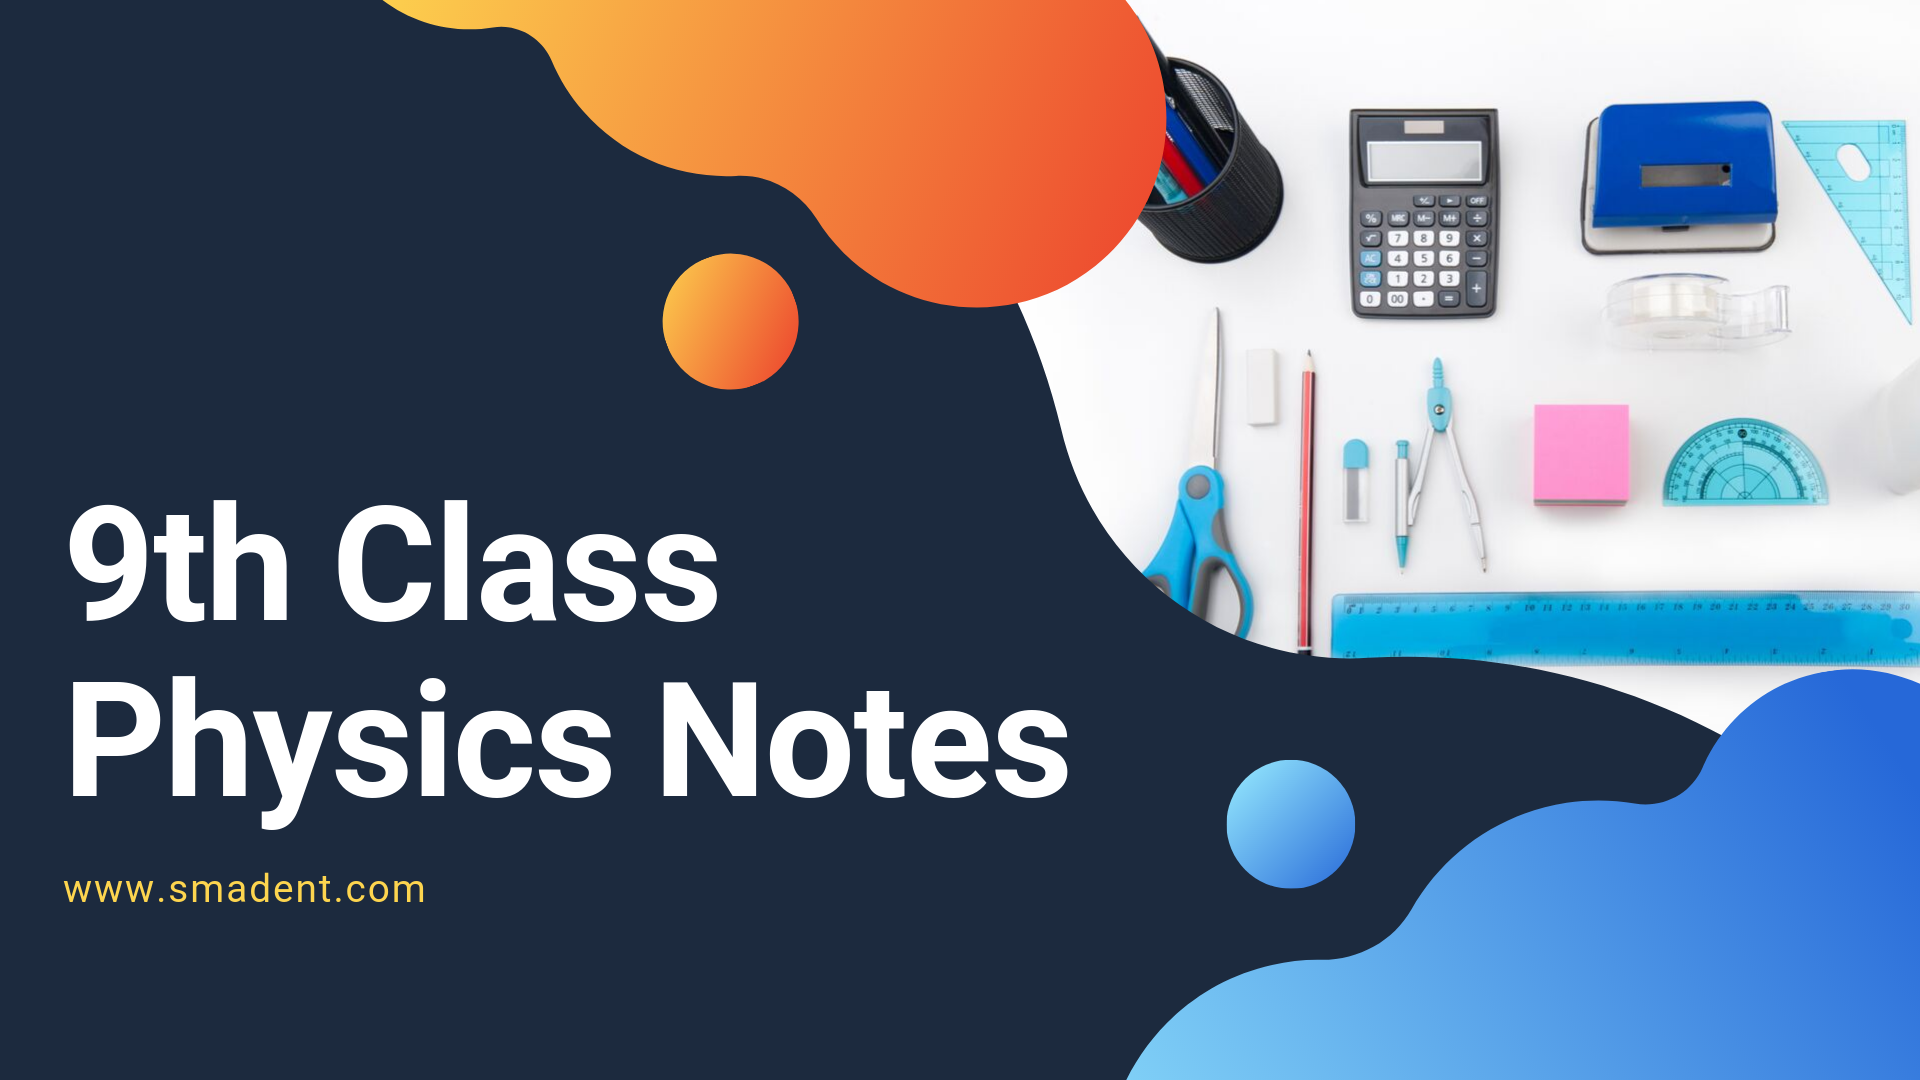 9th Class Physics Notes [Updated Edition]